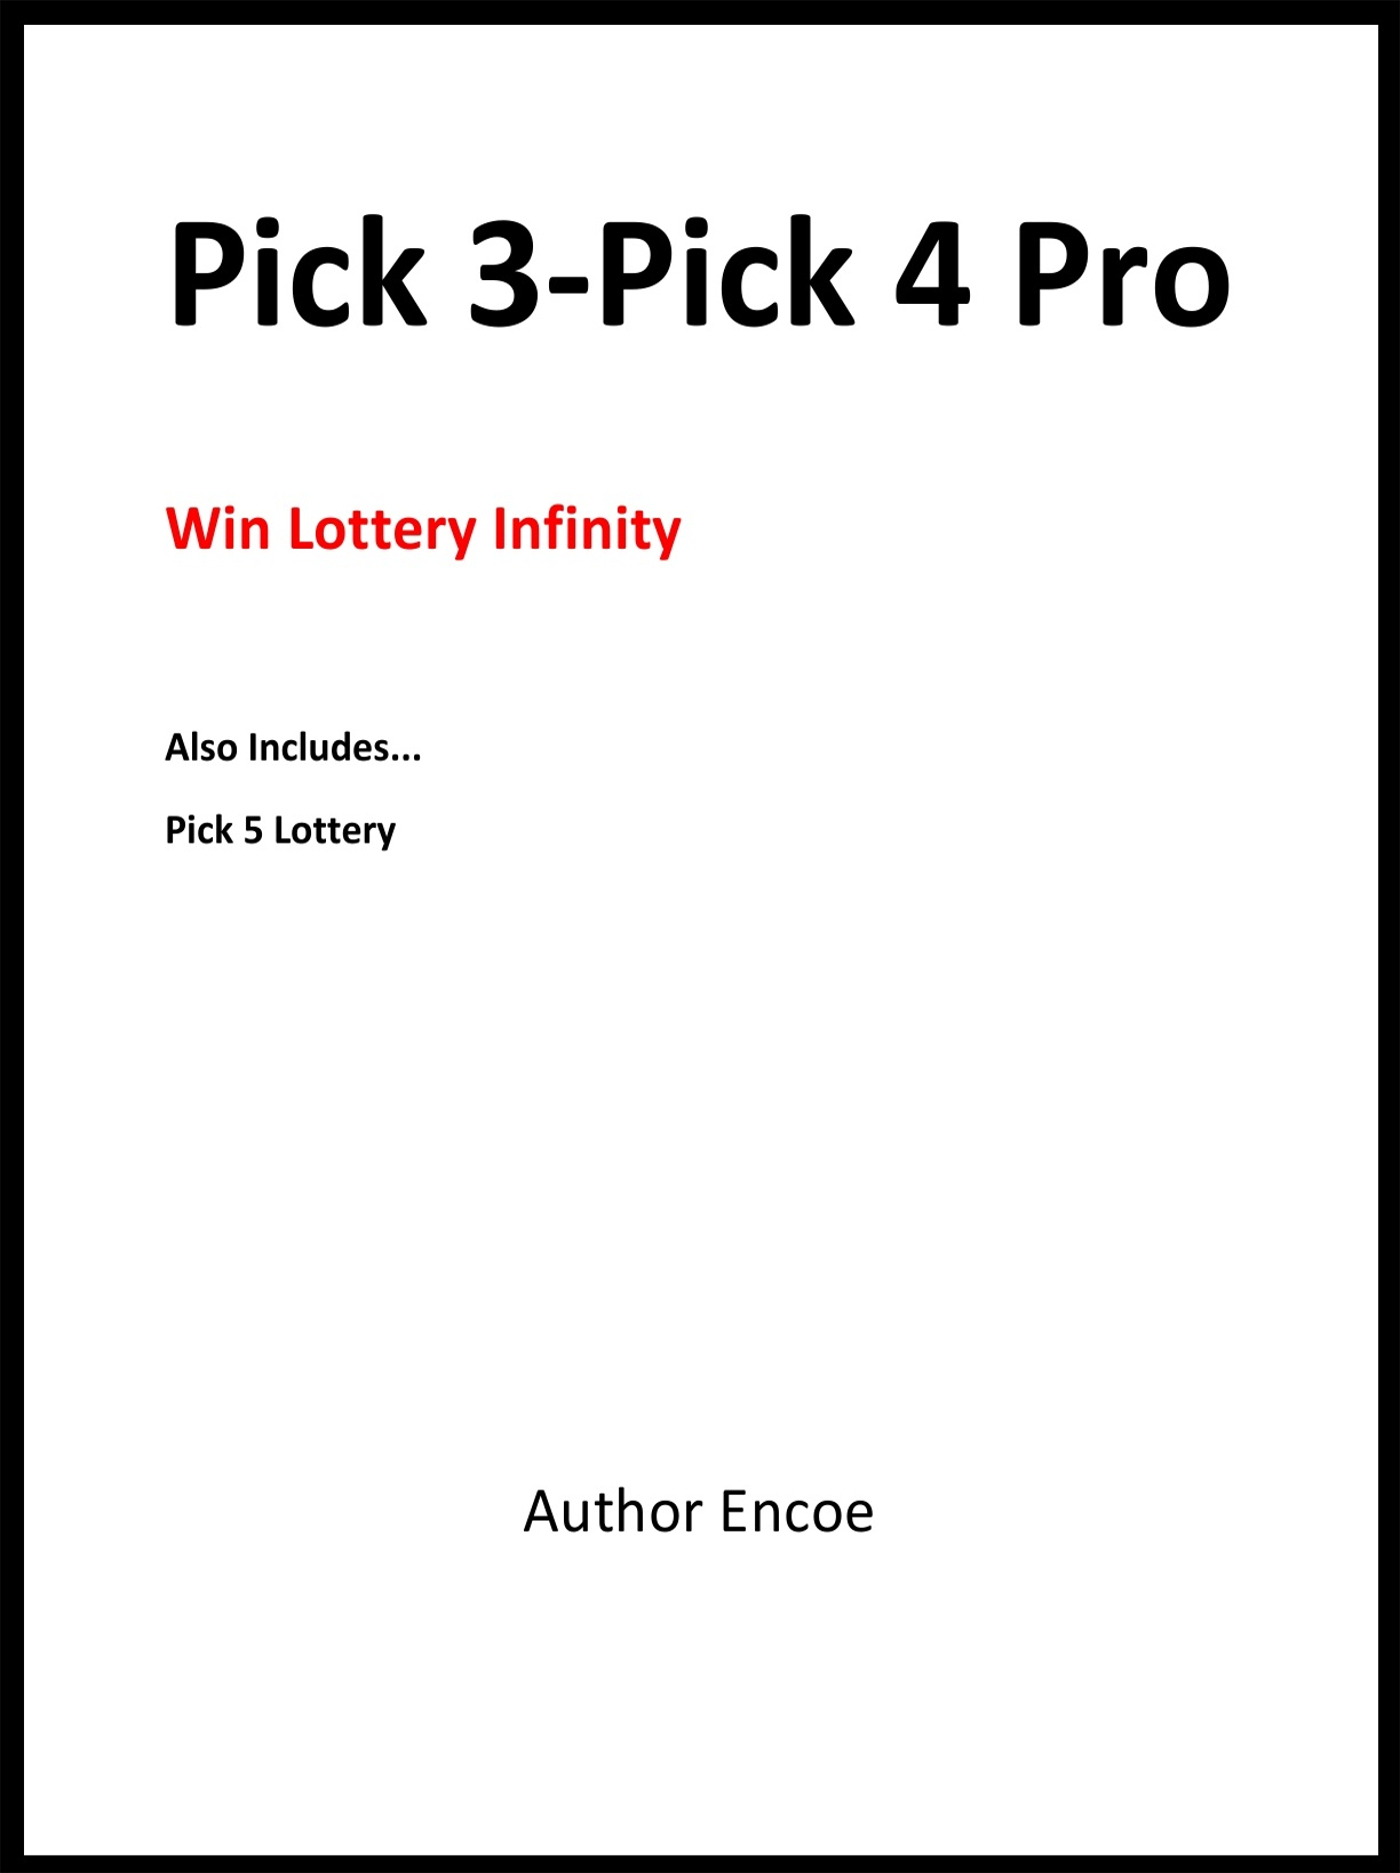 Pick 3-Pick 4 Pro: Win Lottery Infinity, an Ebook by Author